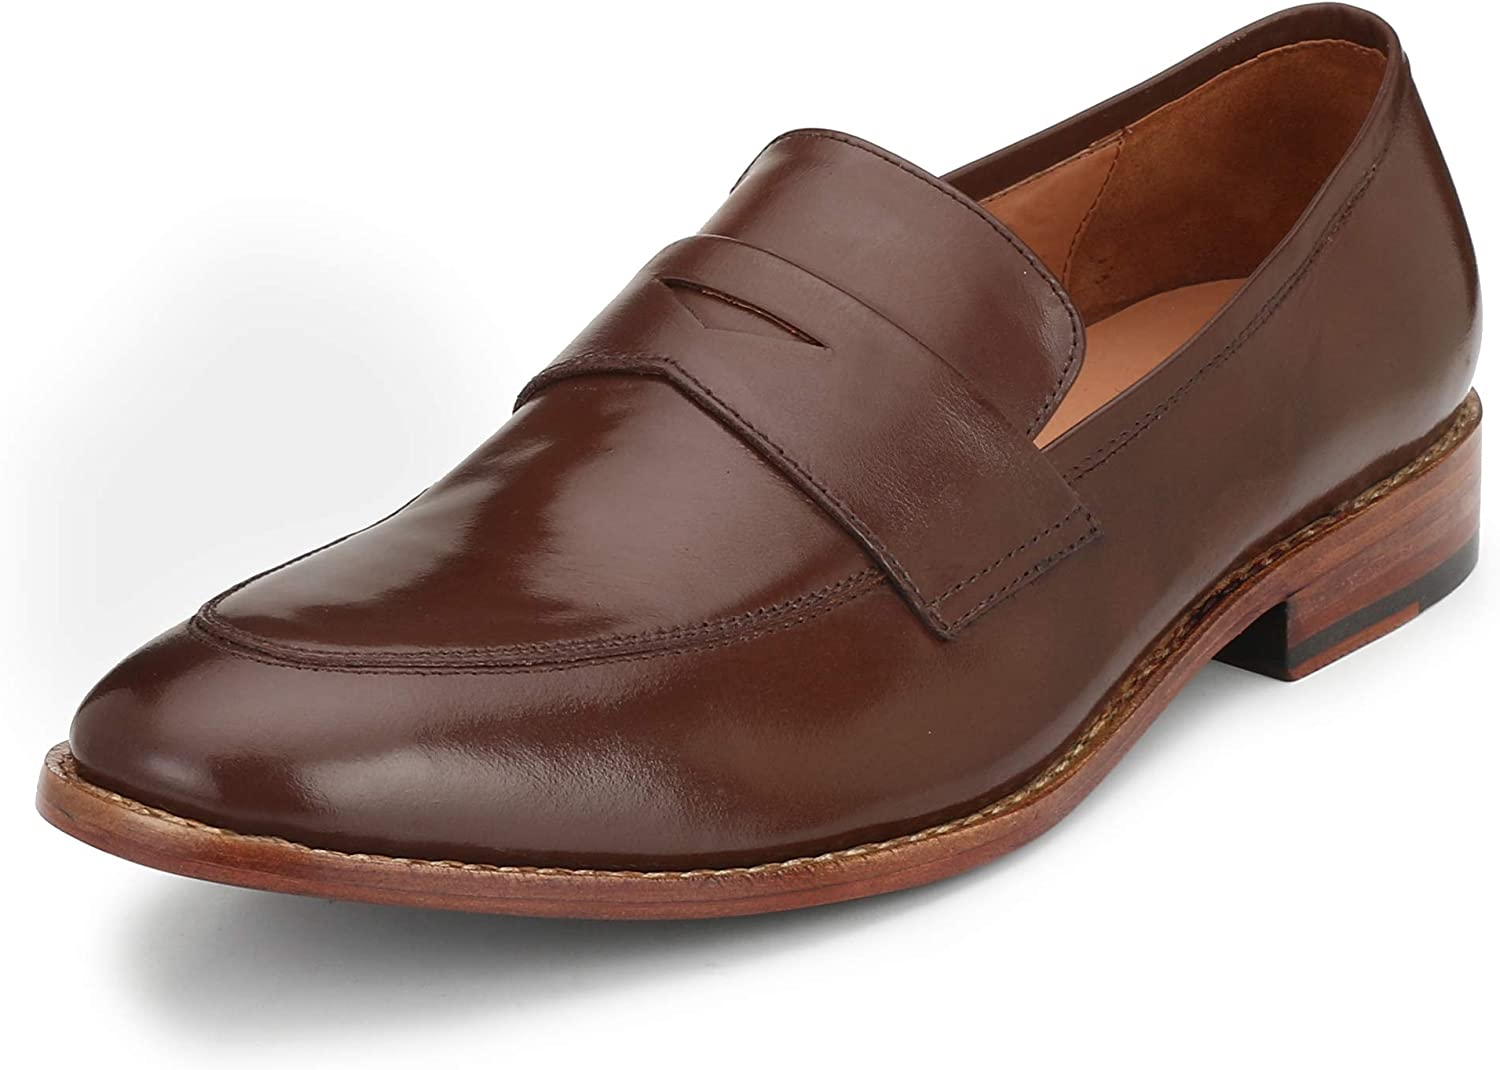 KINGKOMFORT Men's Handmade Goodyear Welted Slip-On Richmond (KK001) Loafer Leather shoes in Black and Brown